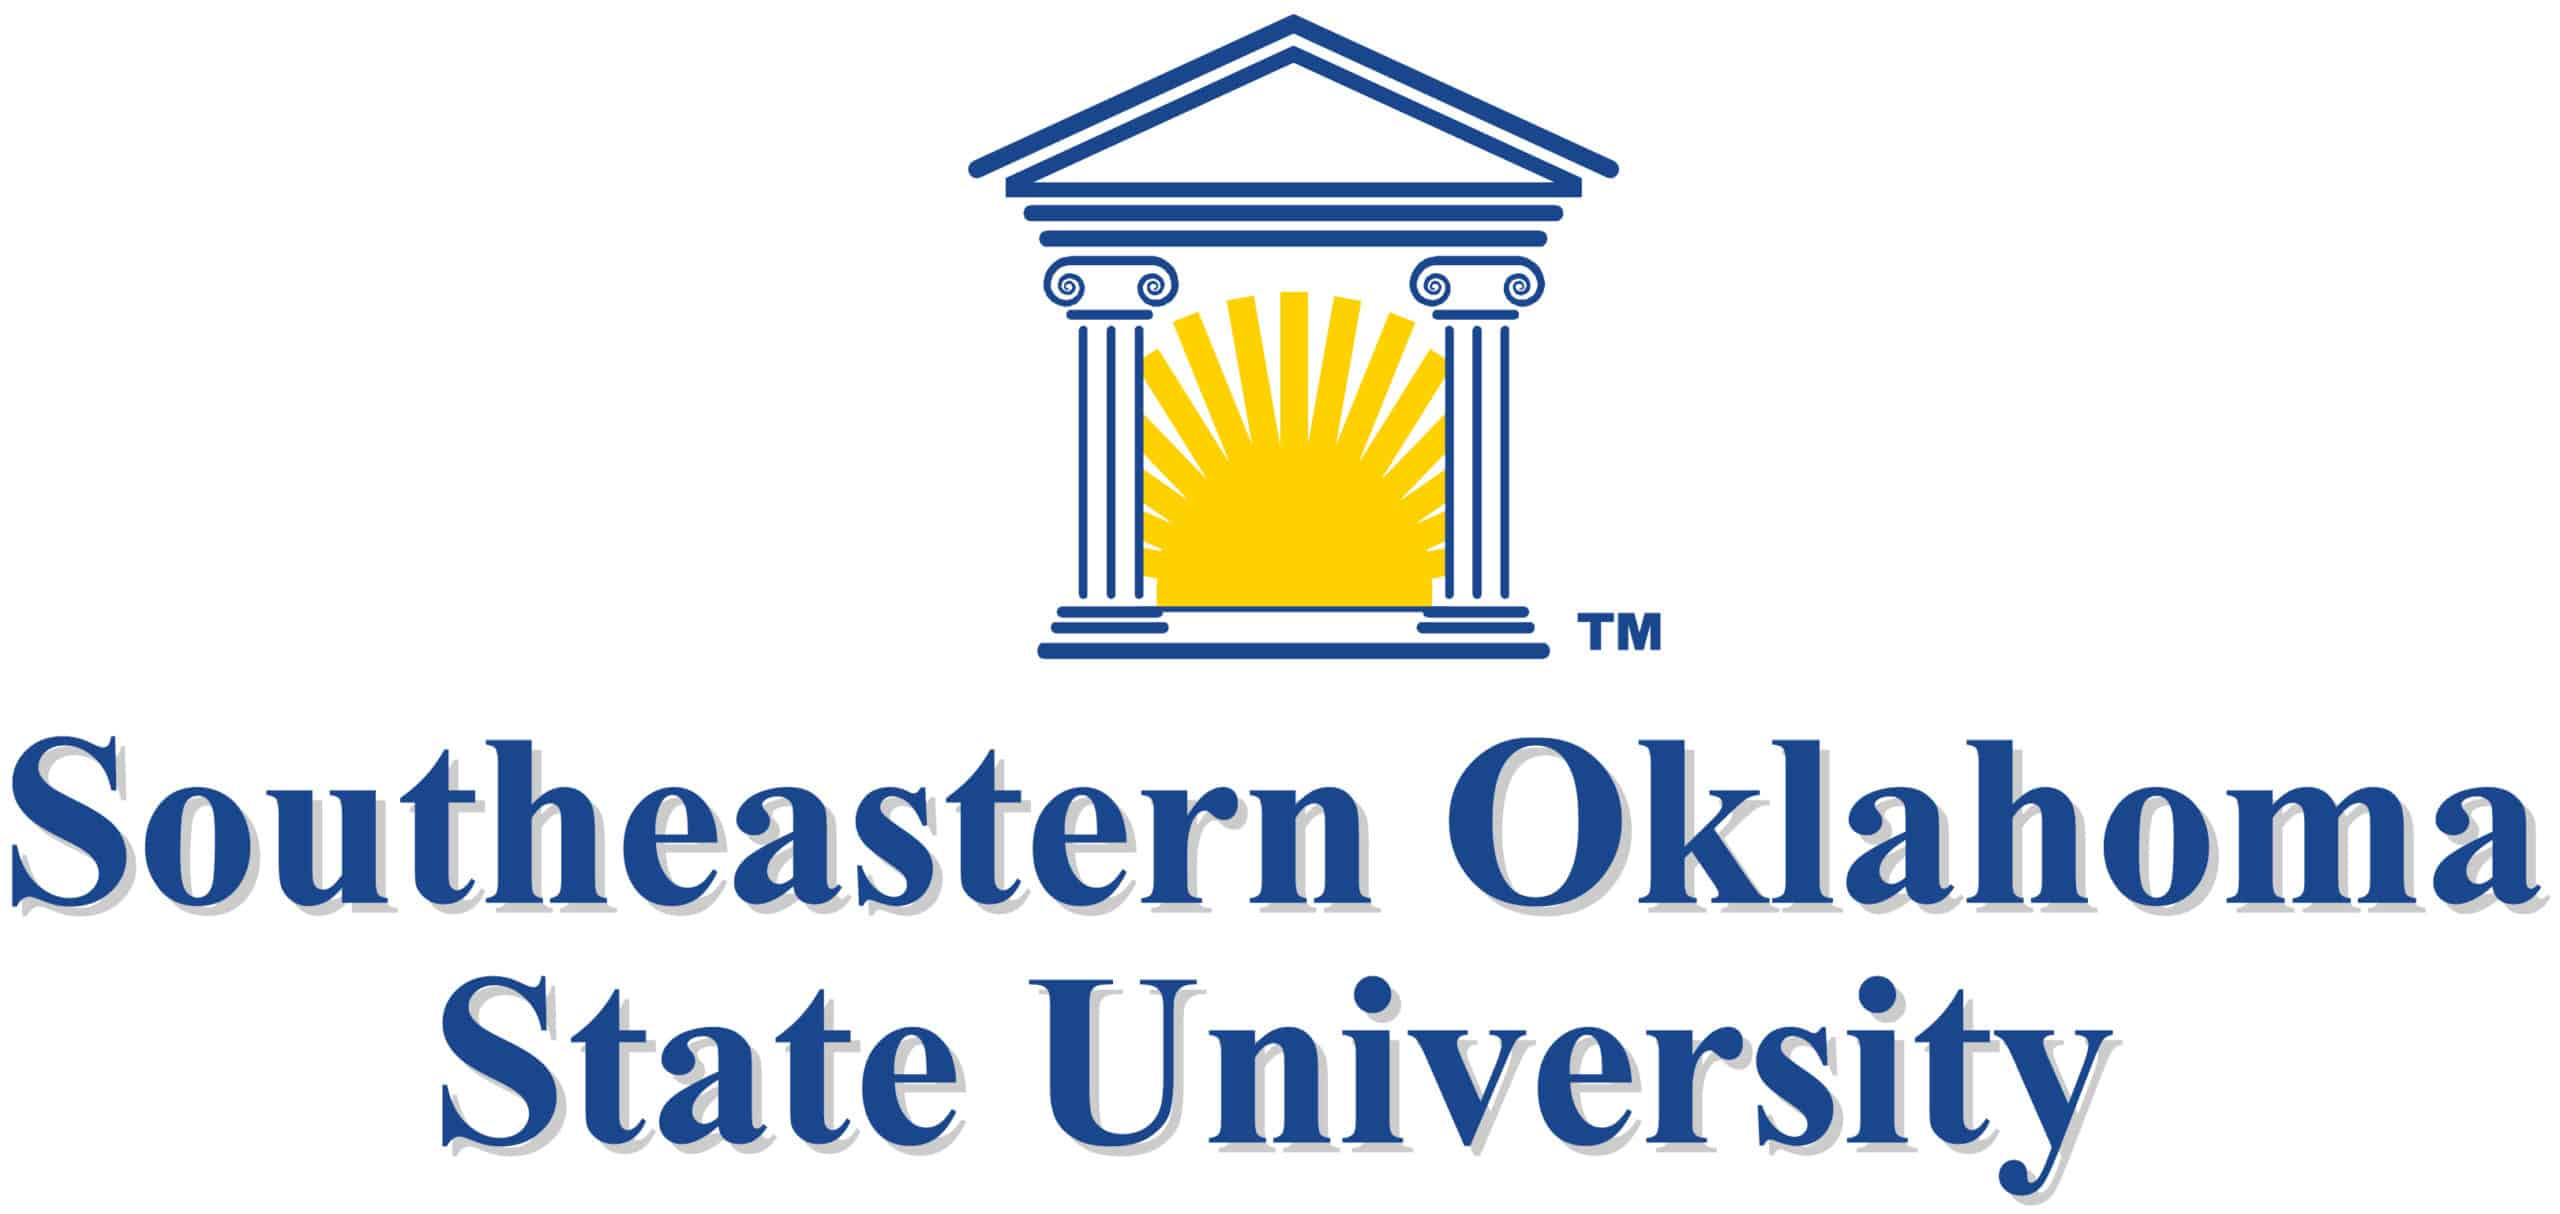 Southeastern Oklahoma State University logo from website